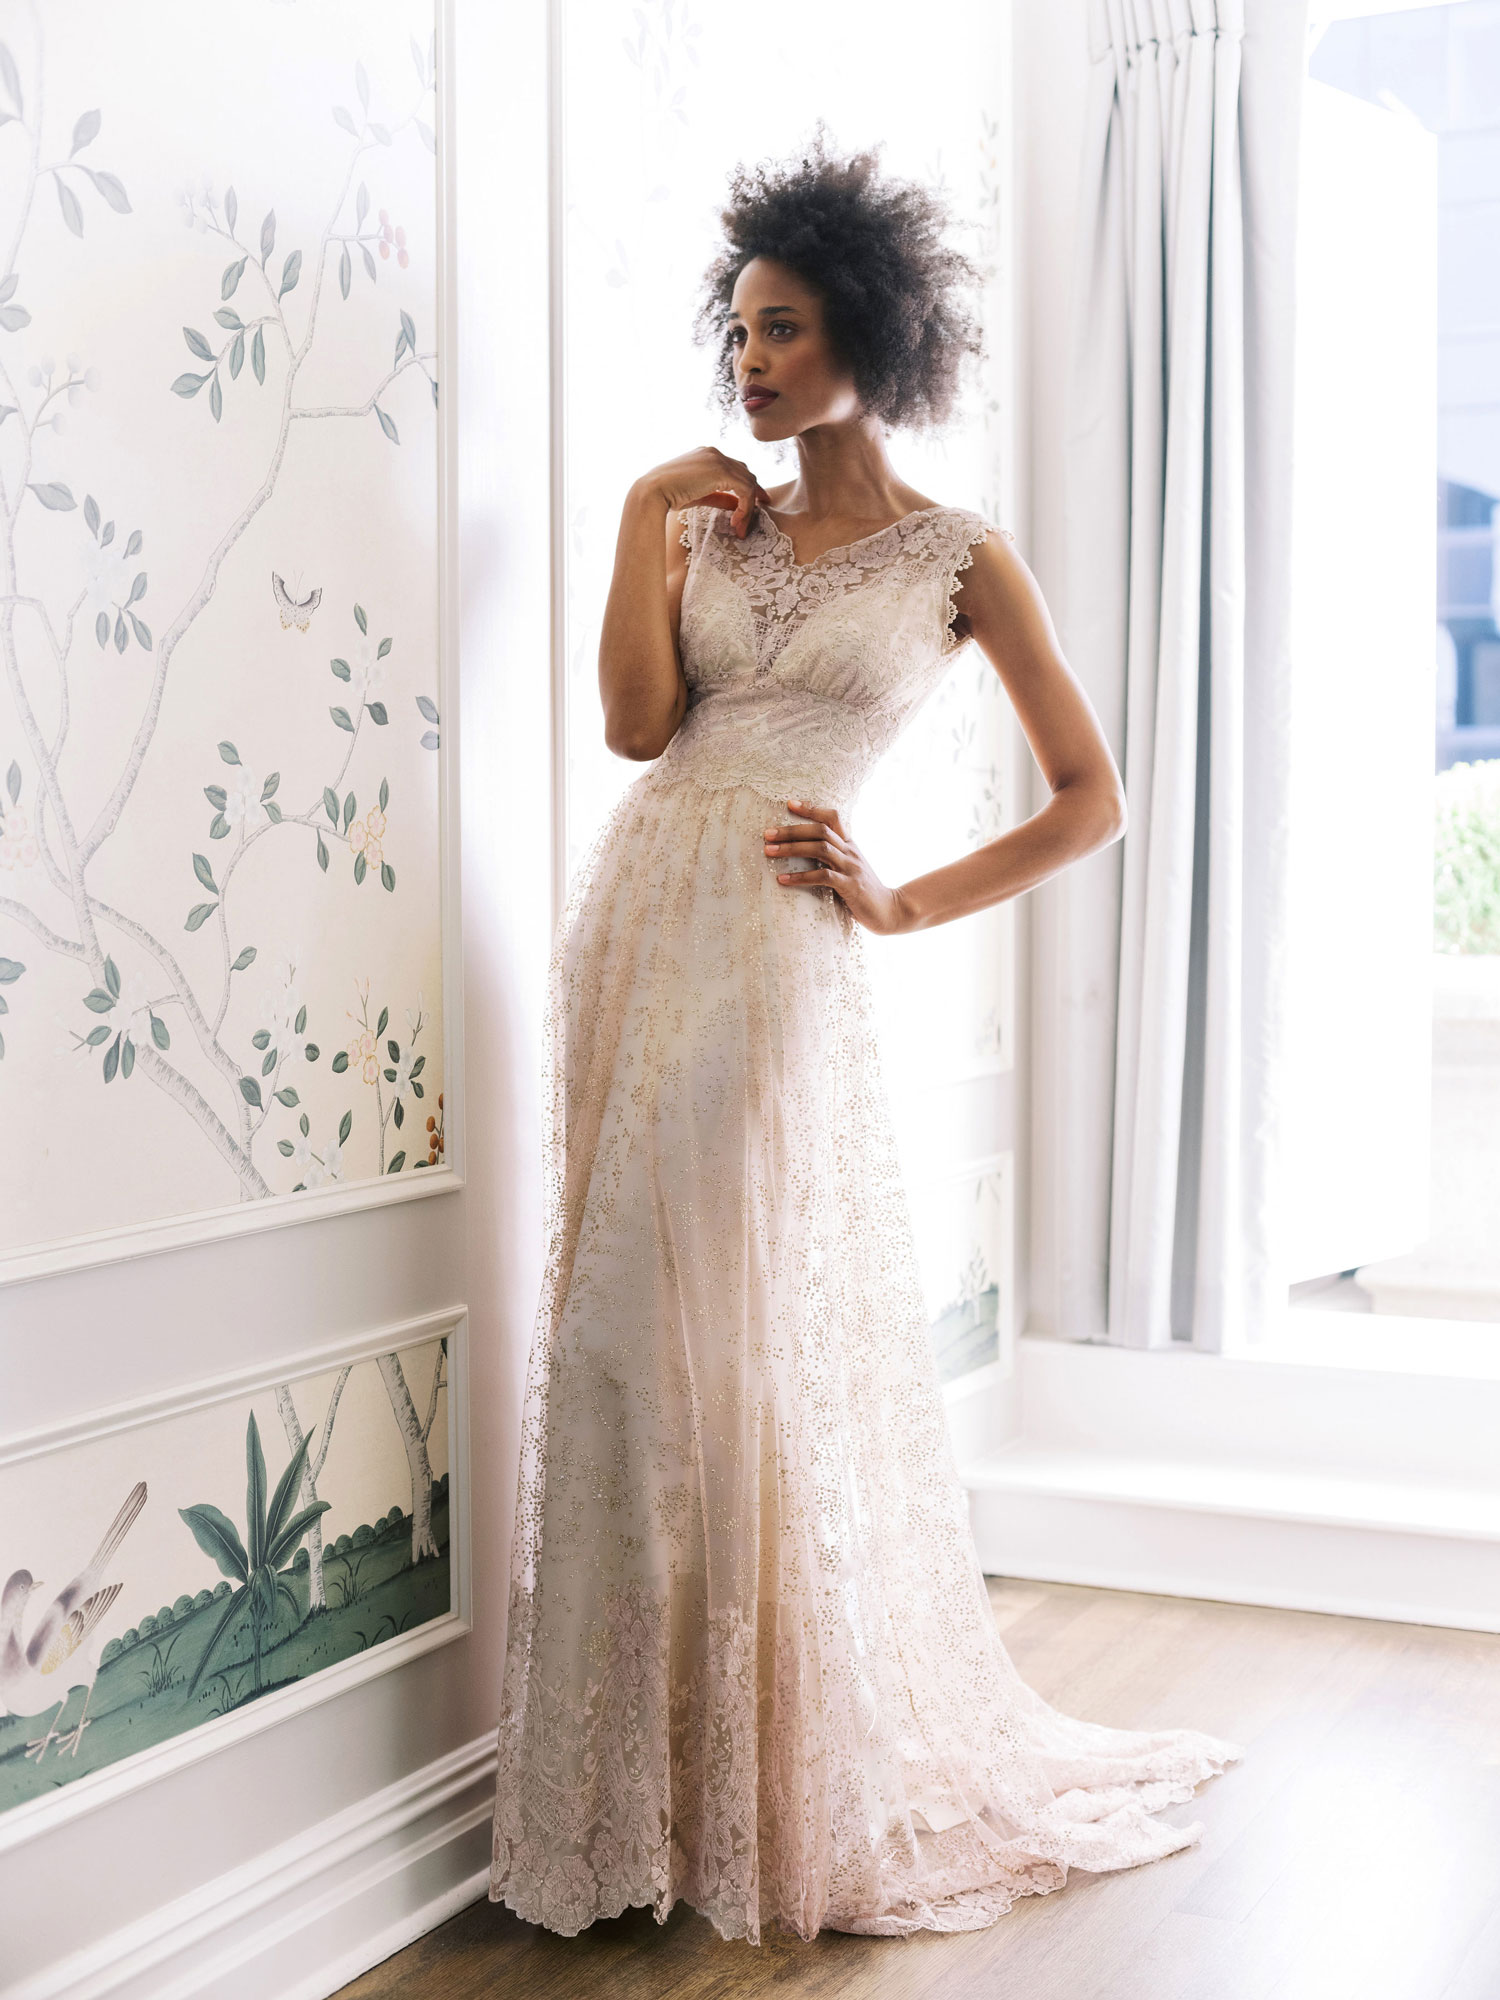 Claire Pettibone Evolution 2020 bridal collection Aurora wedding dress